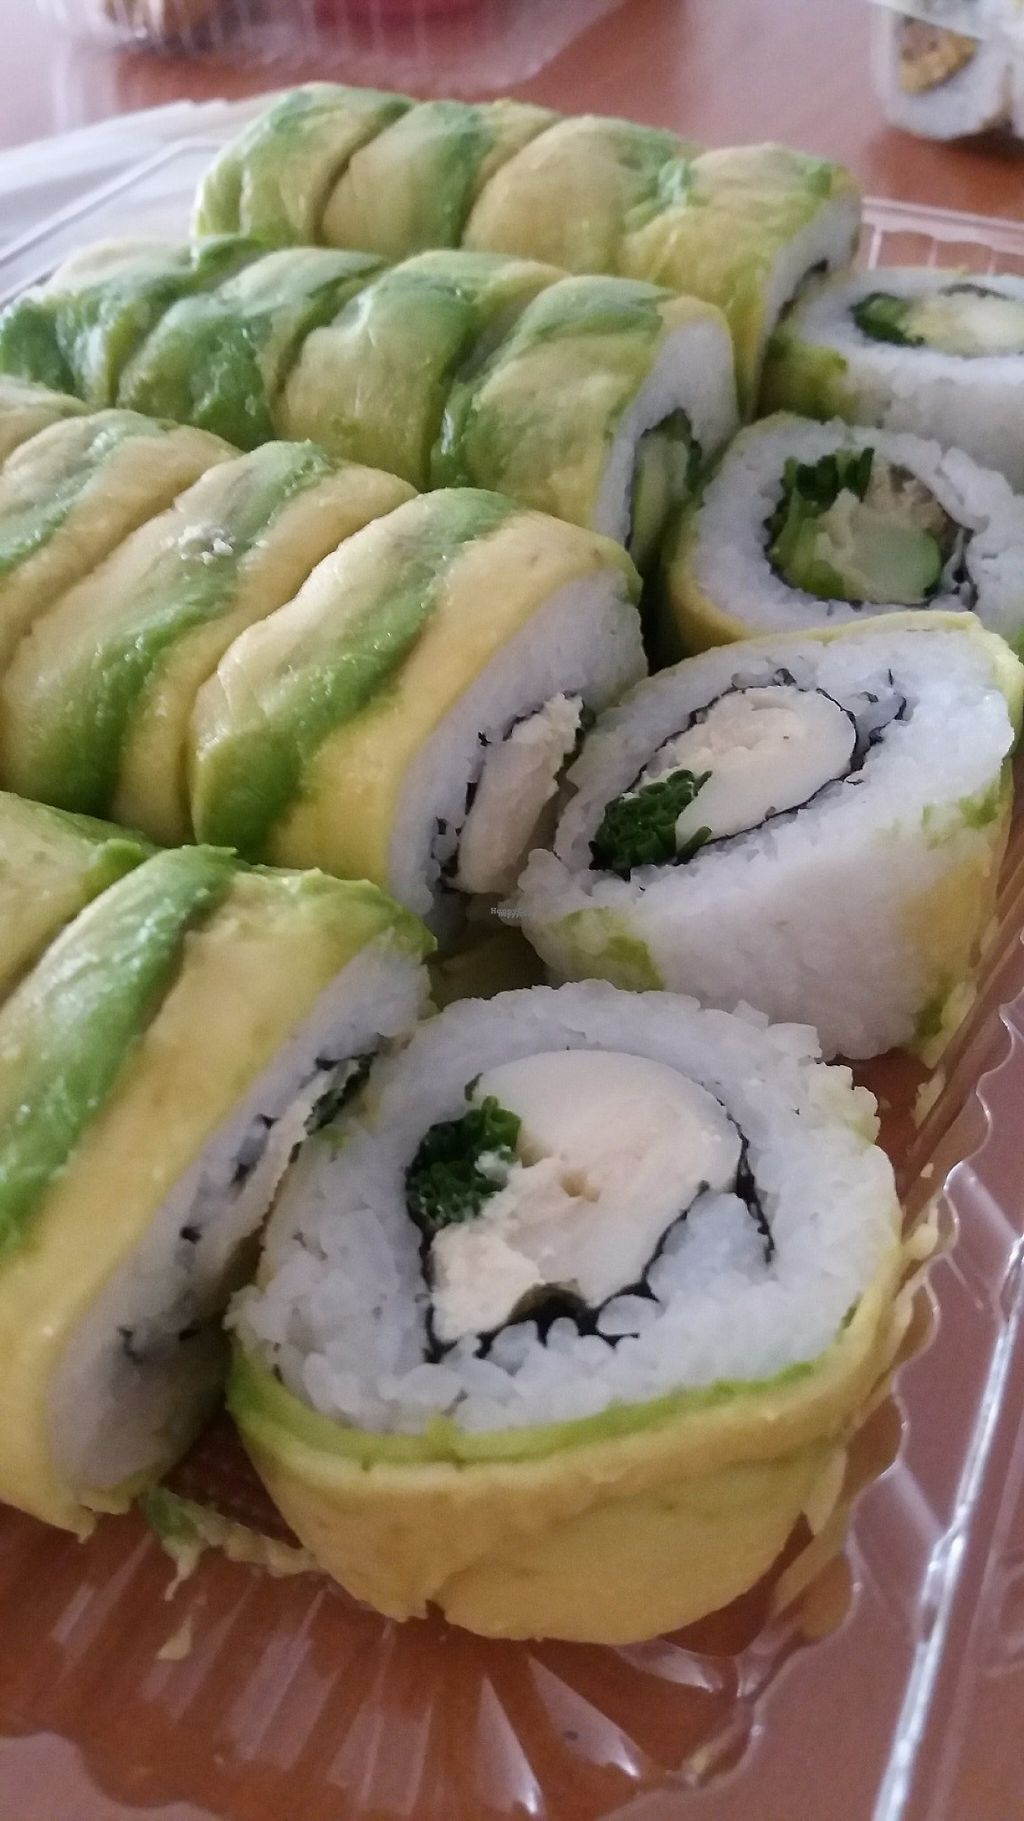 """Photo of Runaway Sushi  by <a href=""""/members/profile/Arta"""">Arta</a> <br/>Vegan promo <br/> March 17, 2017  - <a href='/contact/abuse/image/78099/237630'>Report</a>"""